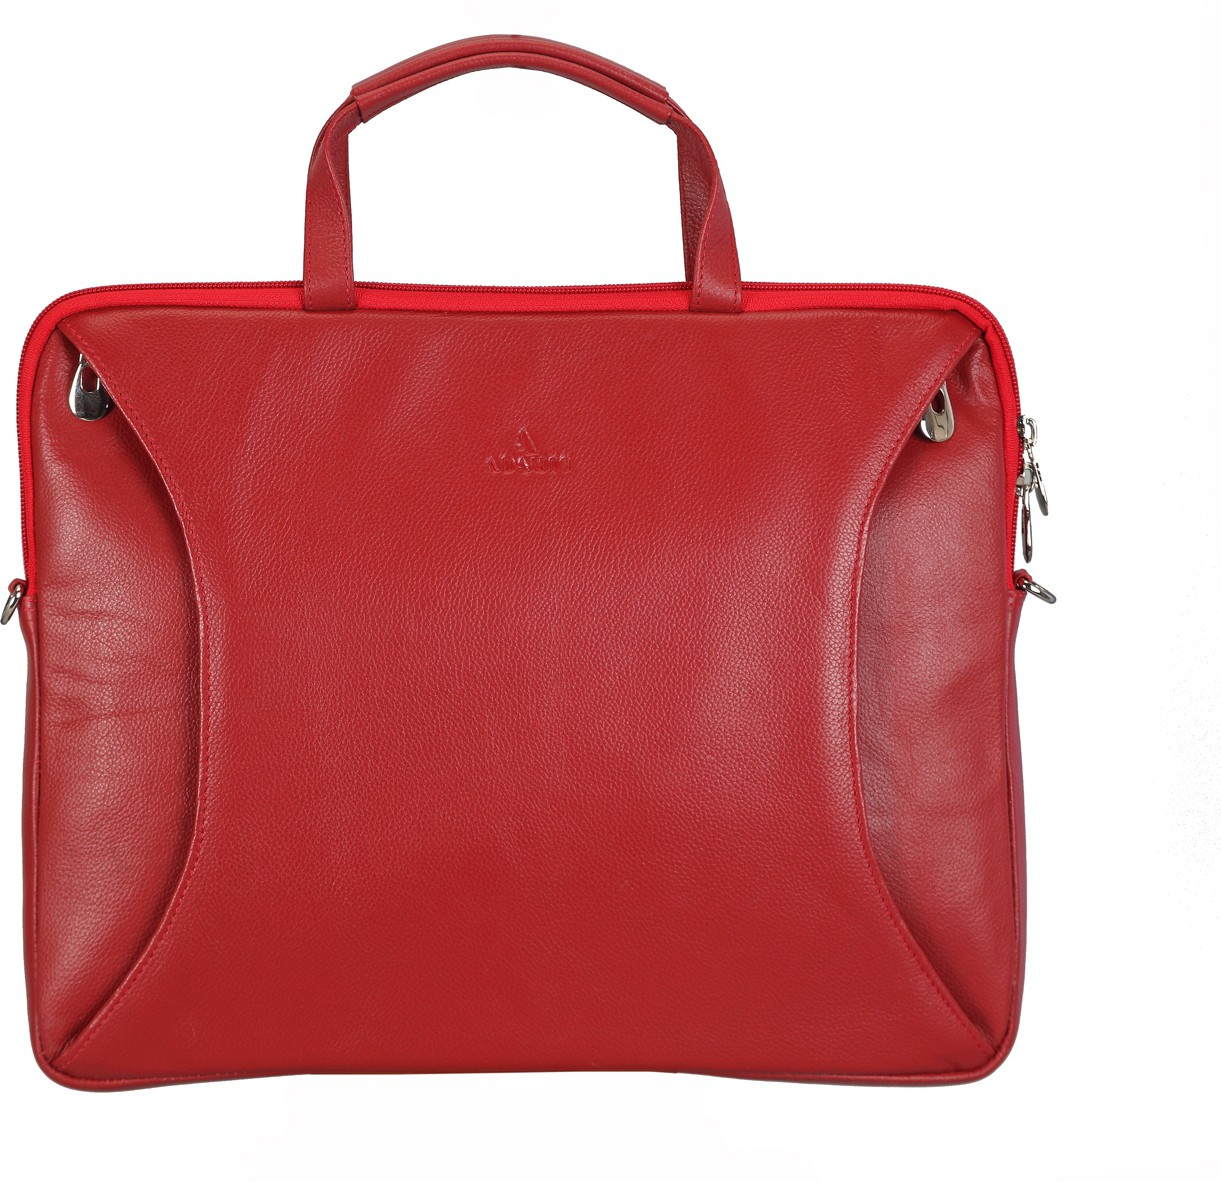 Adamis 14 inch Laptop Case(Red)